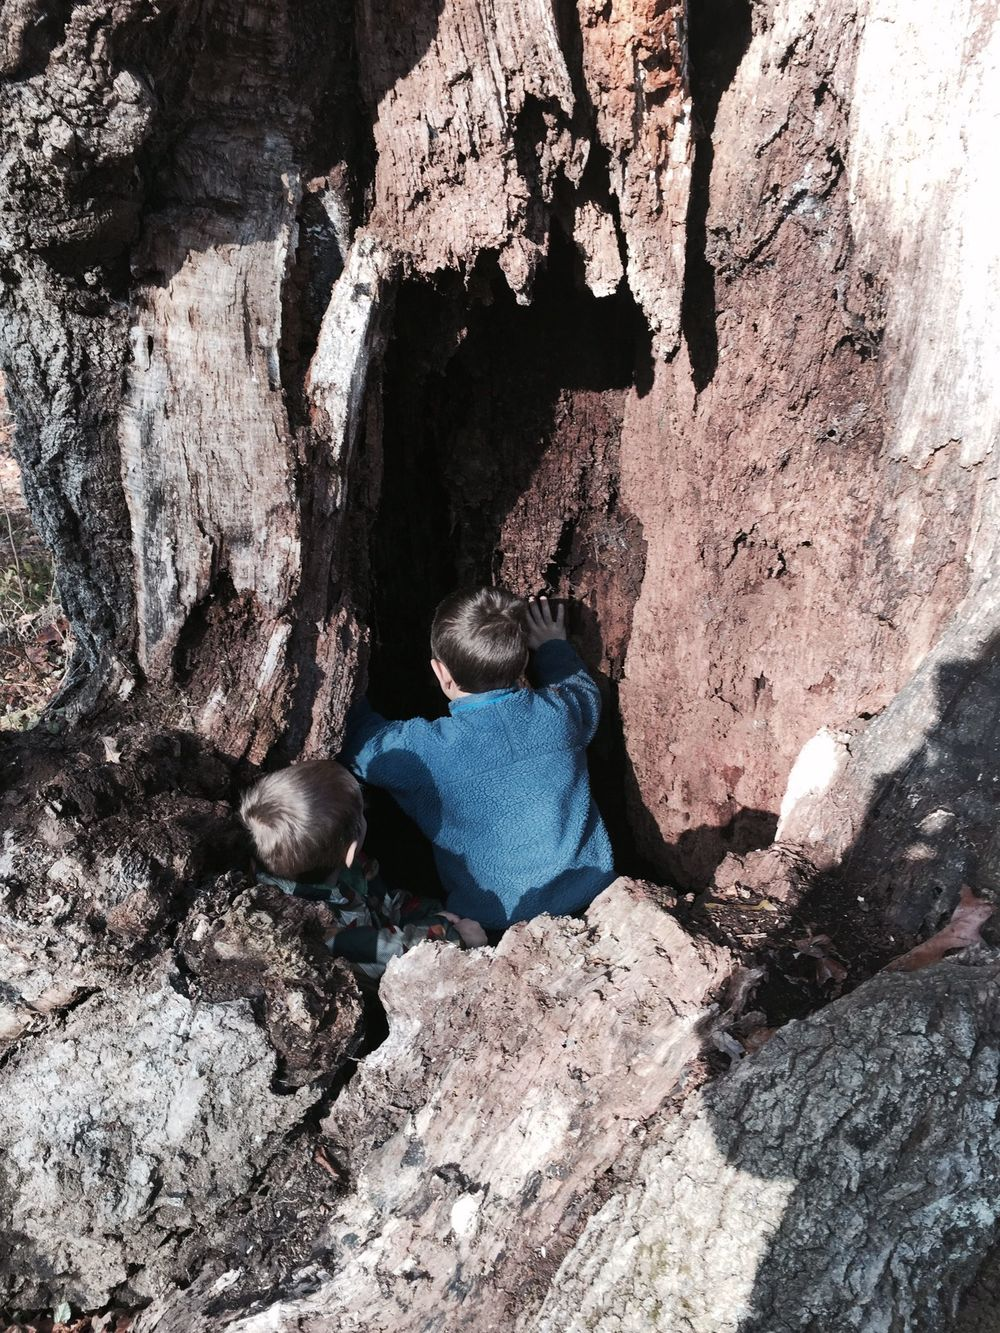 Exploring an old-growth oak tree near school